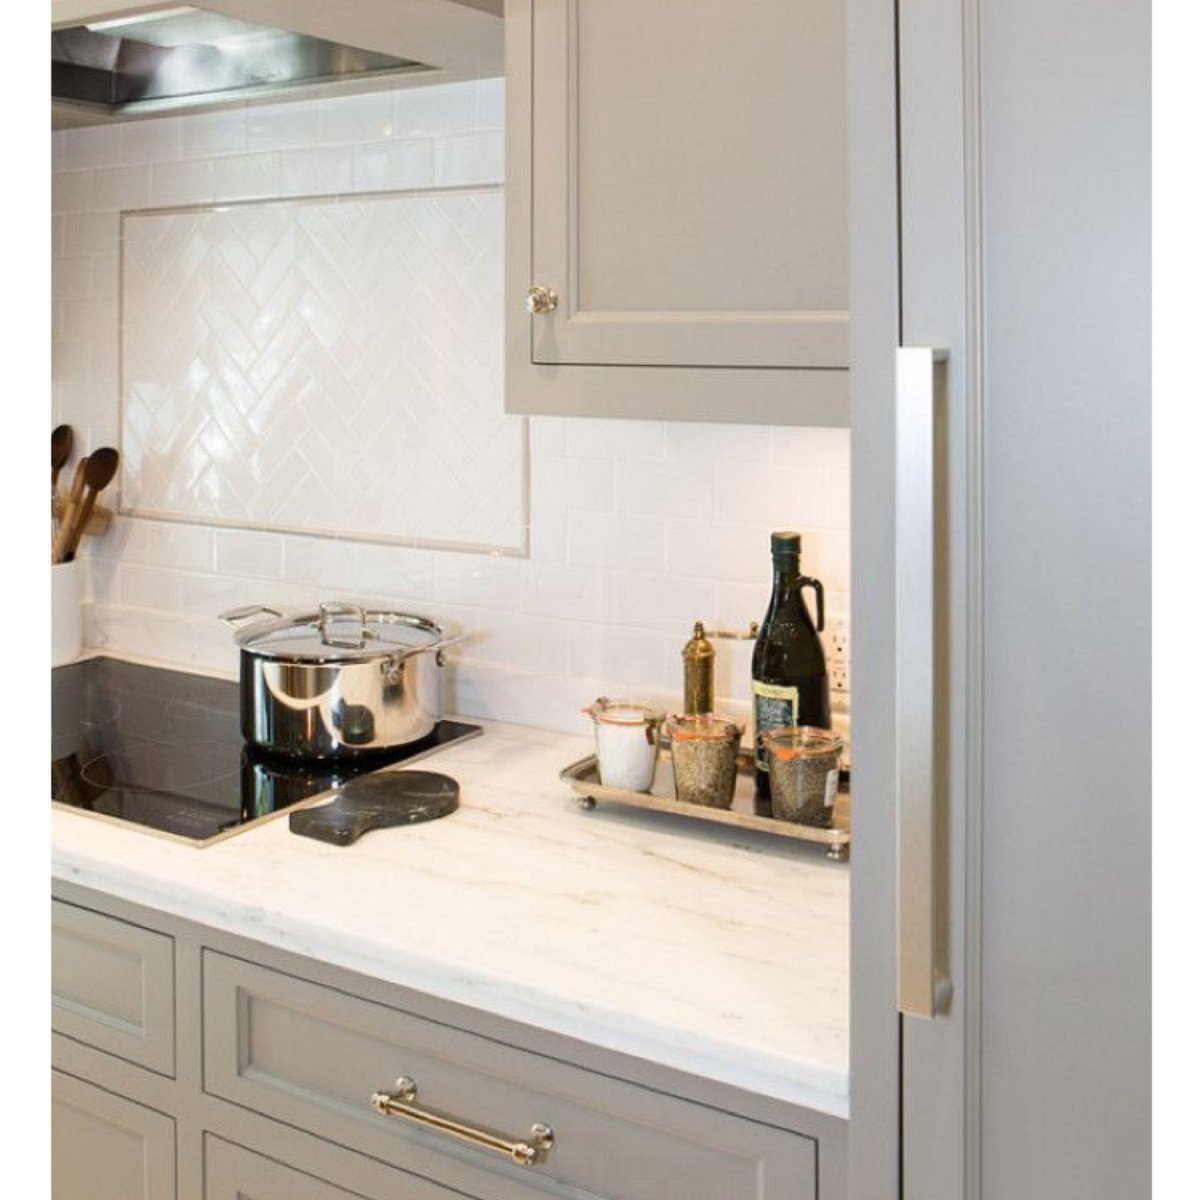 Budekespaints On Twitter Benjamin Moore River Reflections Is A Definite Trend For Your Kitchen Cabinets This Season Kitcheninspiration Designinspo Cabnietry Graykitchen Graycabinets Benjaminmoore Fellspoint Charmcity Baltimore Https T Co